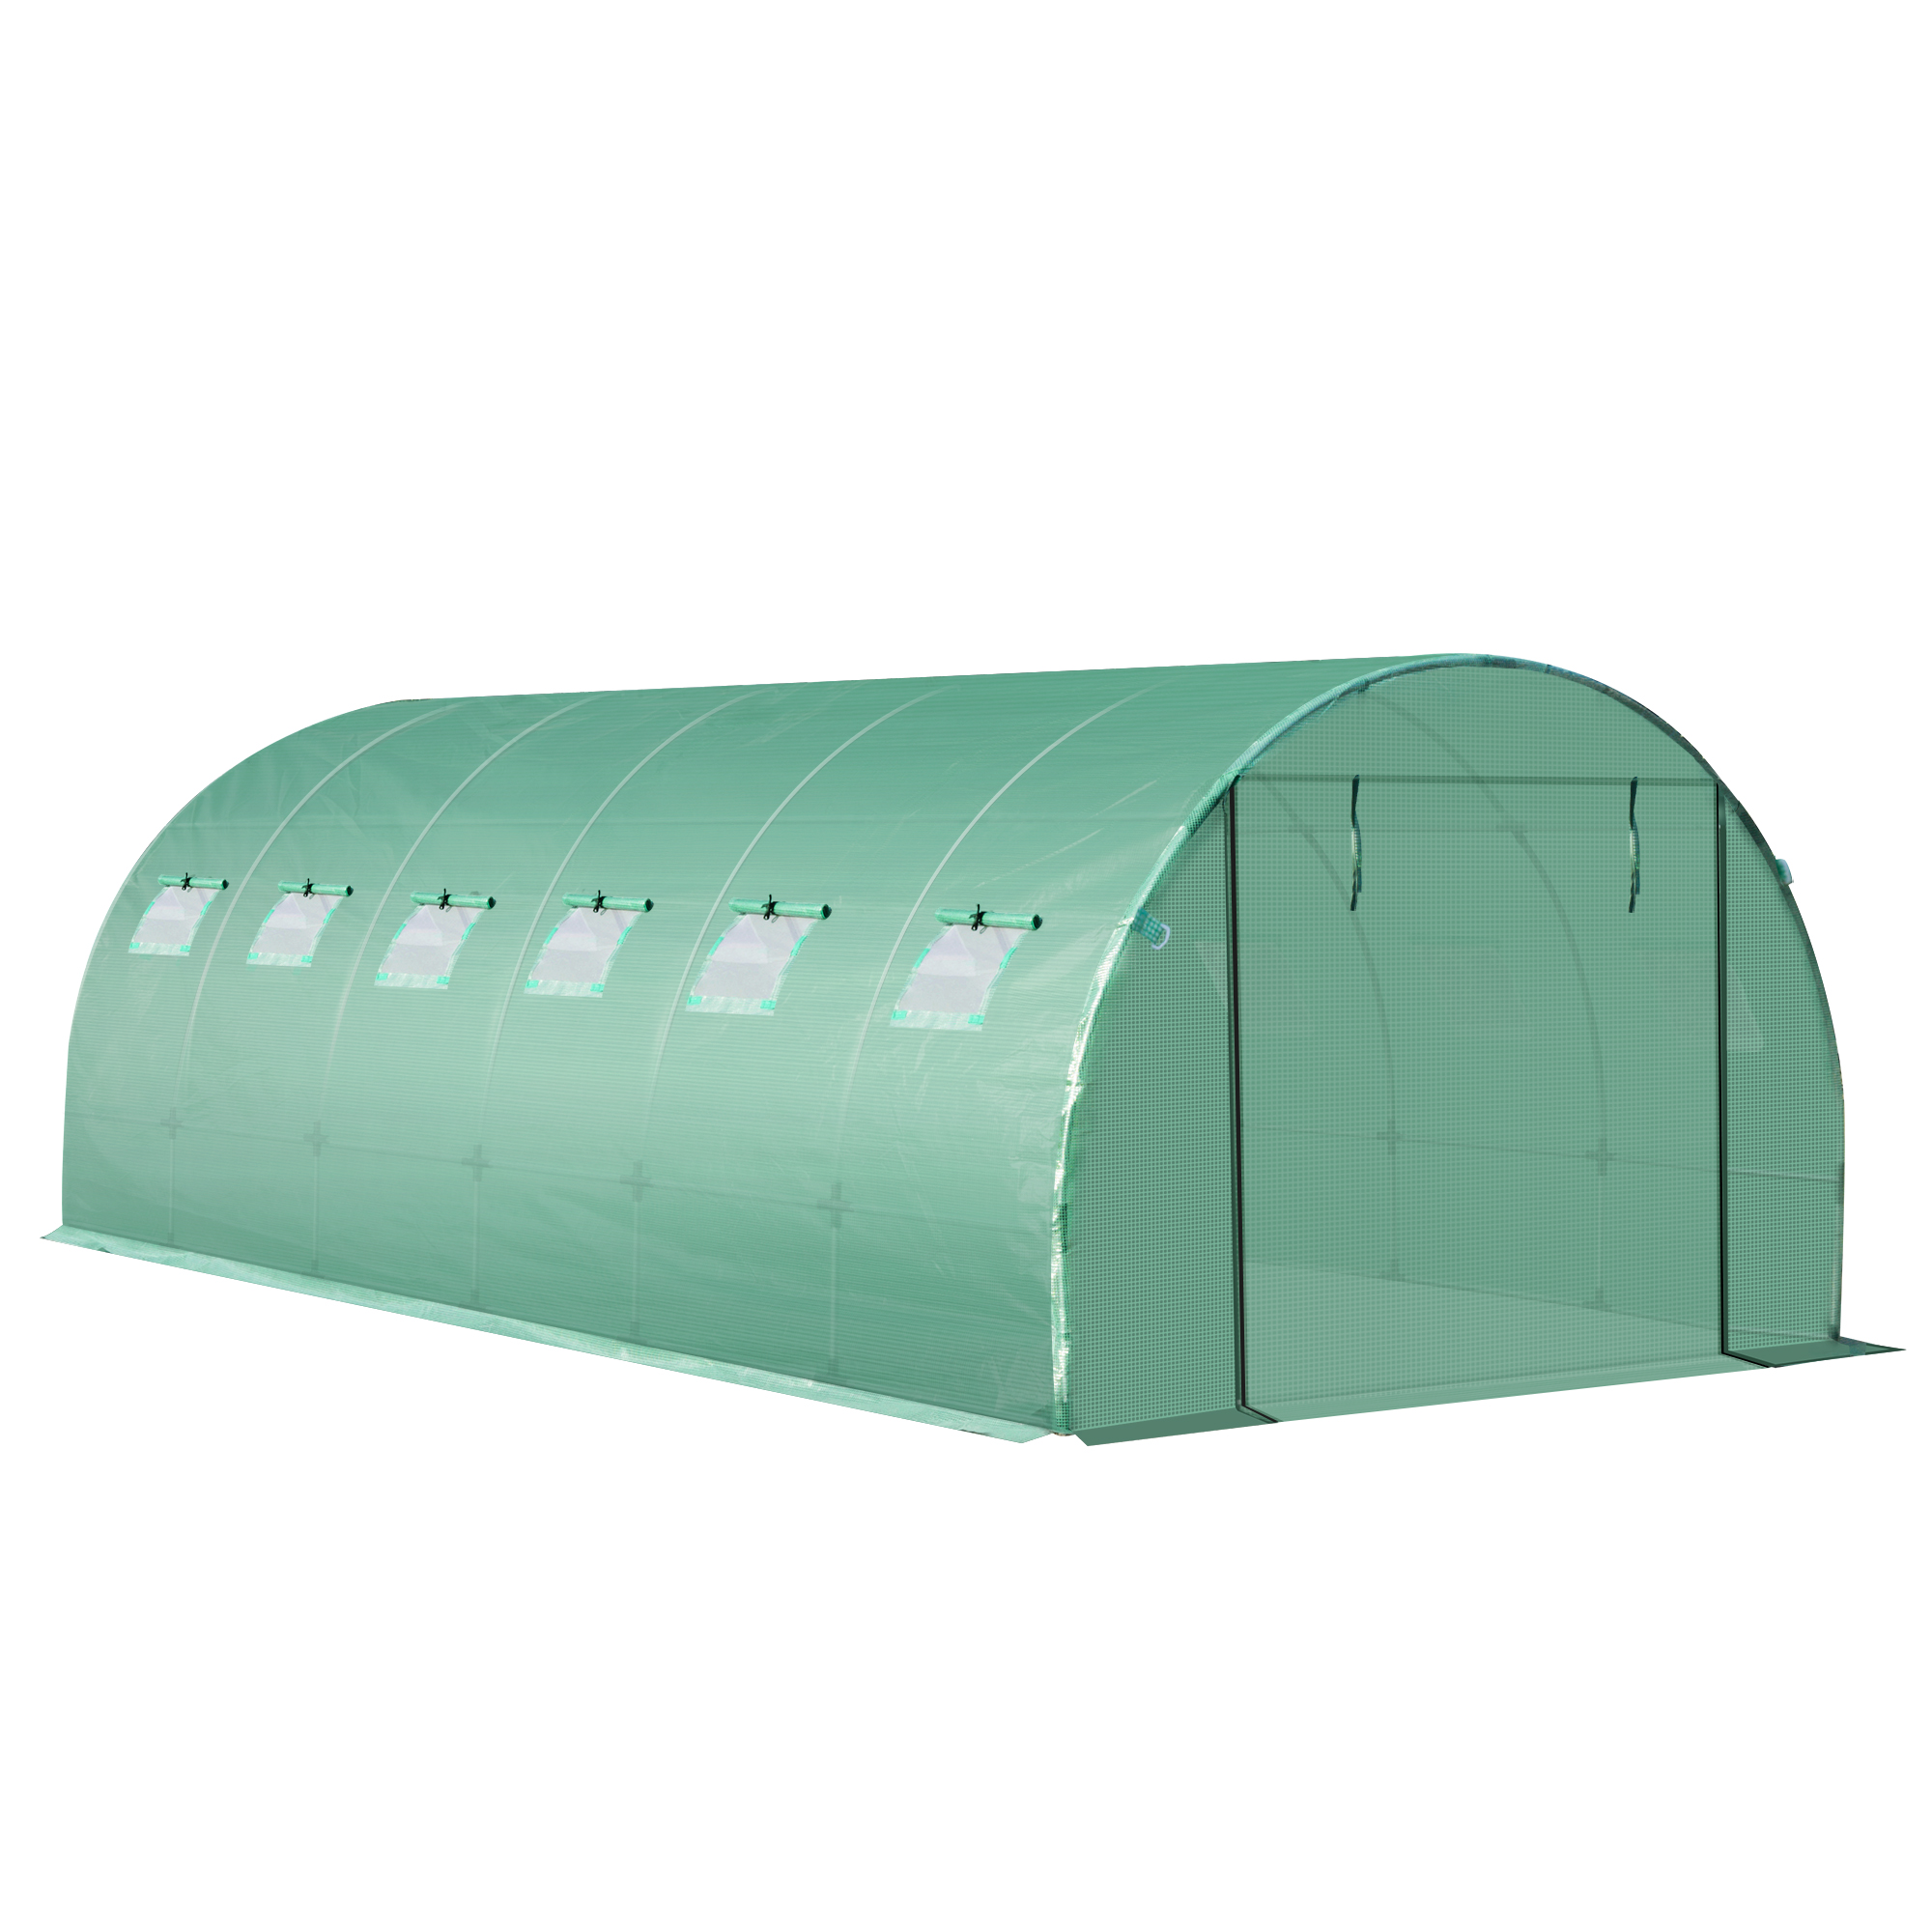 Indexbild 23 - Greenhouse-Replacement-Cover-ONLY-for-Tunnel-Walk-in-Greenhouse